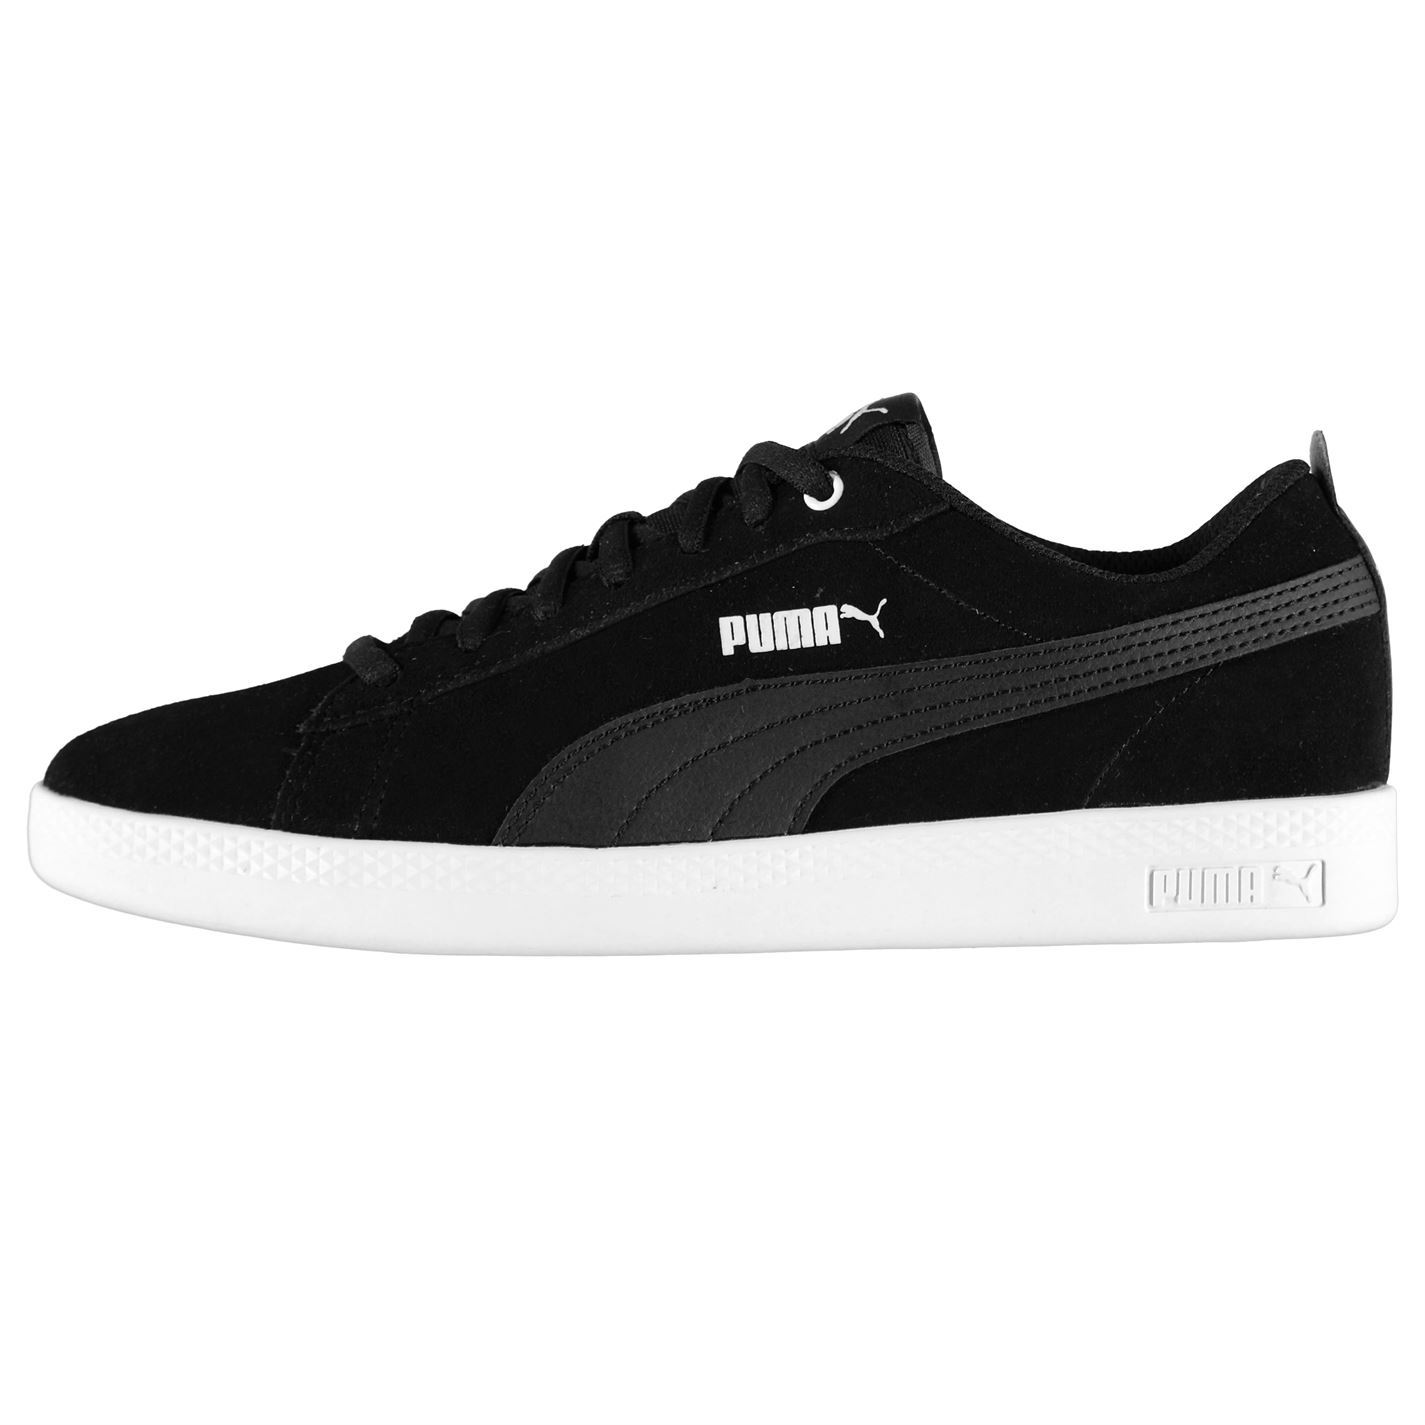 Puma Puma Puma Damenschuhe Smash Suede Trainers Lace Up Padded Ankle Collar Tongue TextuROT 3b2cc7